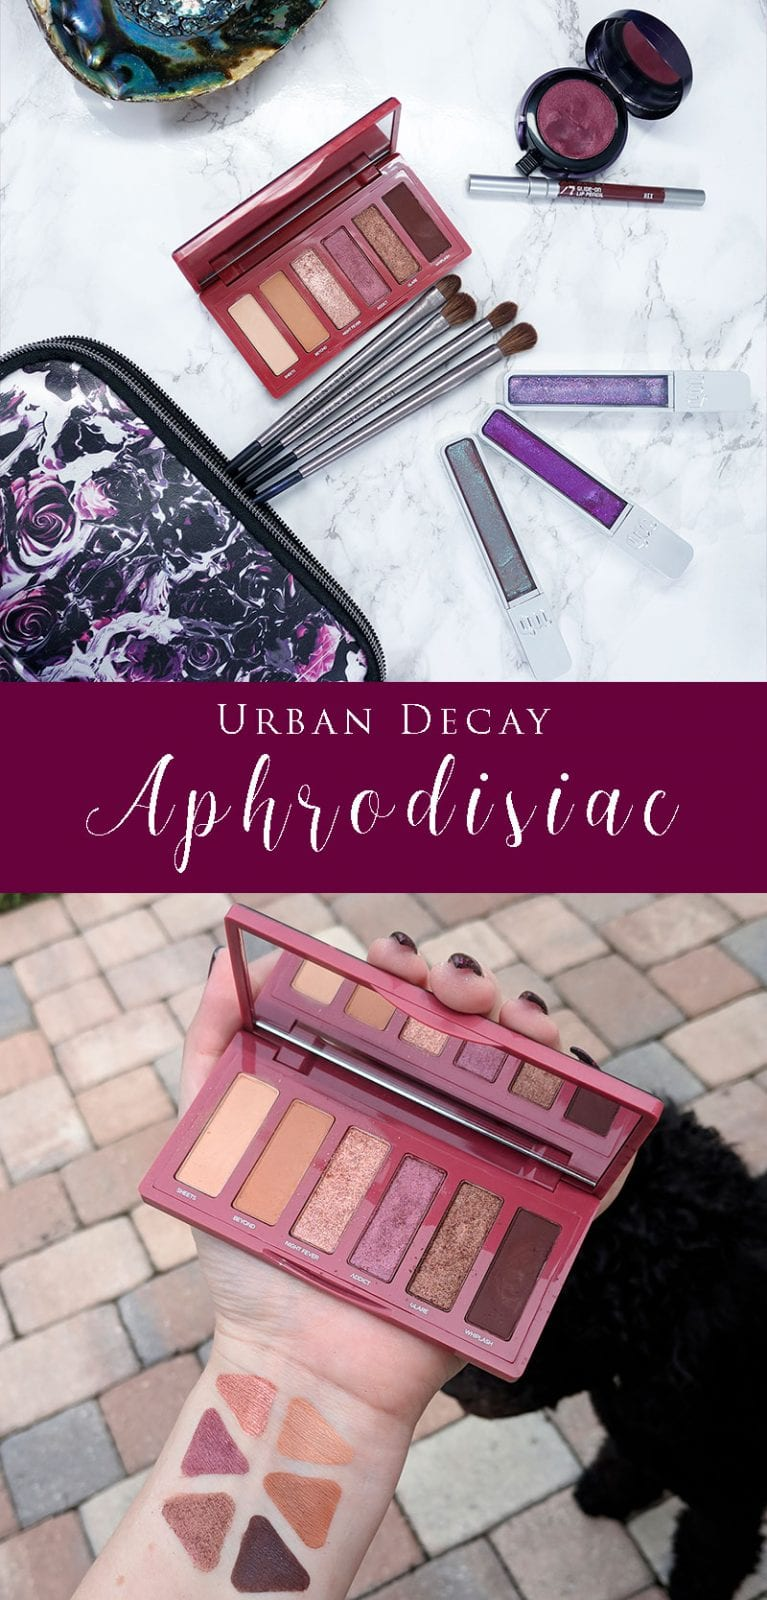 Urban Decay Aphrodisiac Palette Review, Swatches, Demo